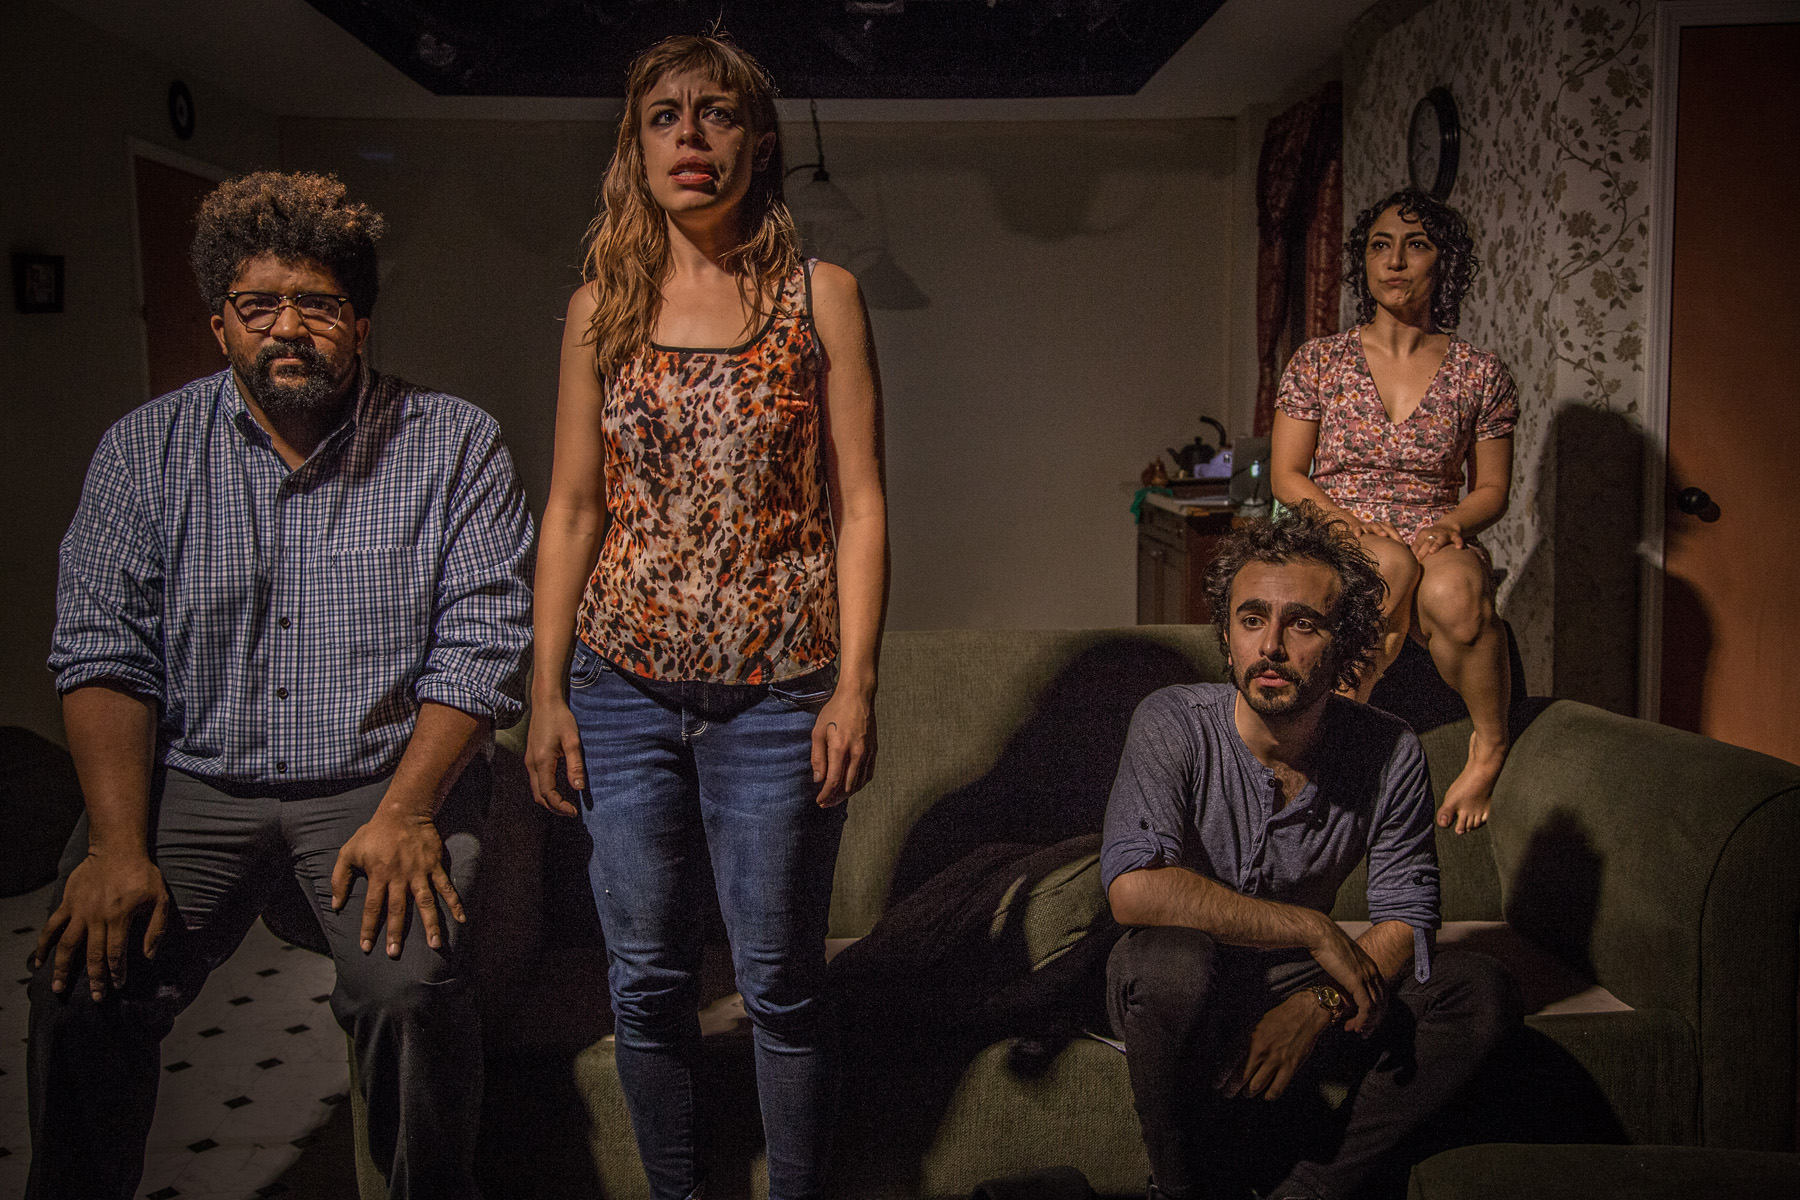 """Featured image: The cast of """"KISS."""" From left to right; director Monty Cole sits on the arm of an olive green couch, with his hands on his thighs facing us. He wears glasses and a blue checked shirt. Cassidy Slaughter-Mason stands in front of the couch arms at her side. She looks up and to the right. She wears a leopard print tank top and blue denim jeans. Her shadow grazes Salar Ardebili who sits on the couch staring out to the left. He wears a blue shirt and black pants. Arti Ishak sits behind him wearing a pink and brown floral dress, looking out to the left. There is a hanging lamp behind them, a door to their left, and a kitchen sink behind Ishak. Image courtesy of Austin D. Oie."""